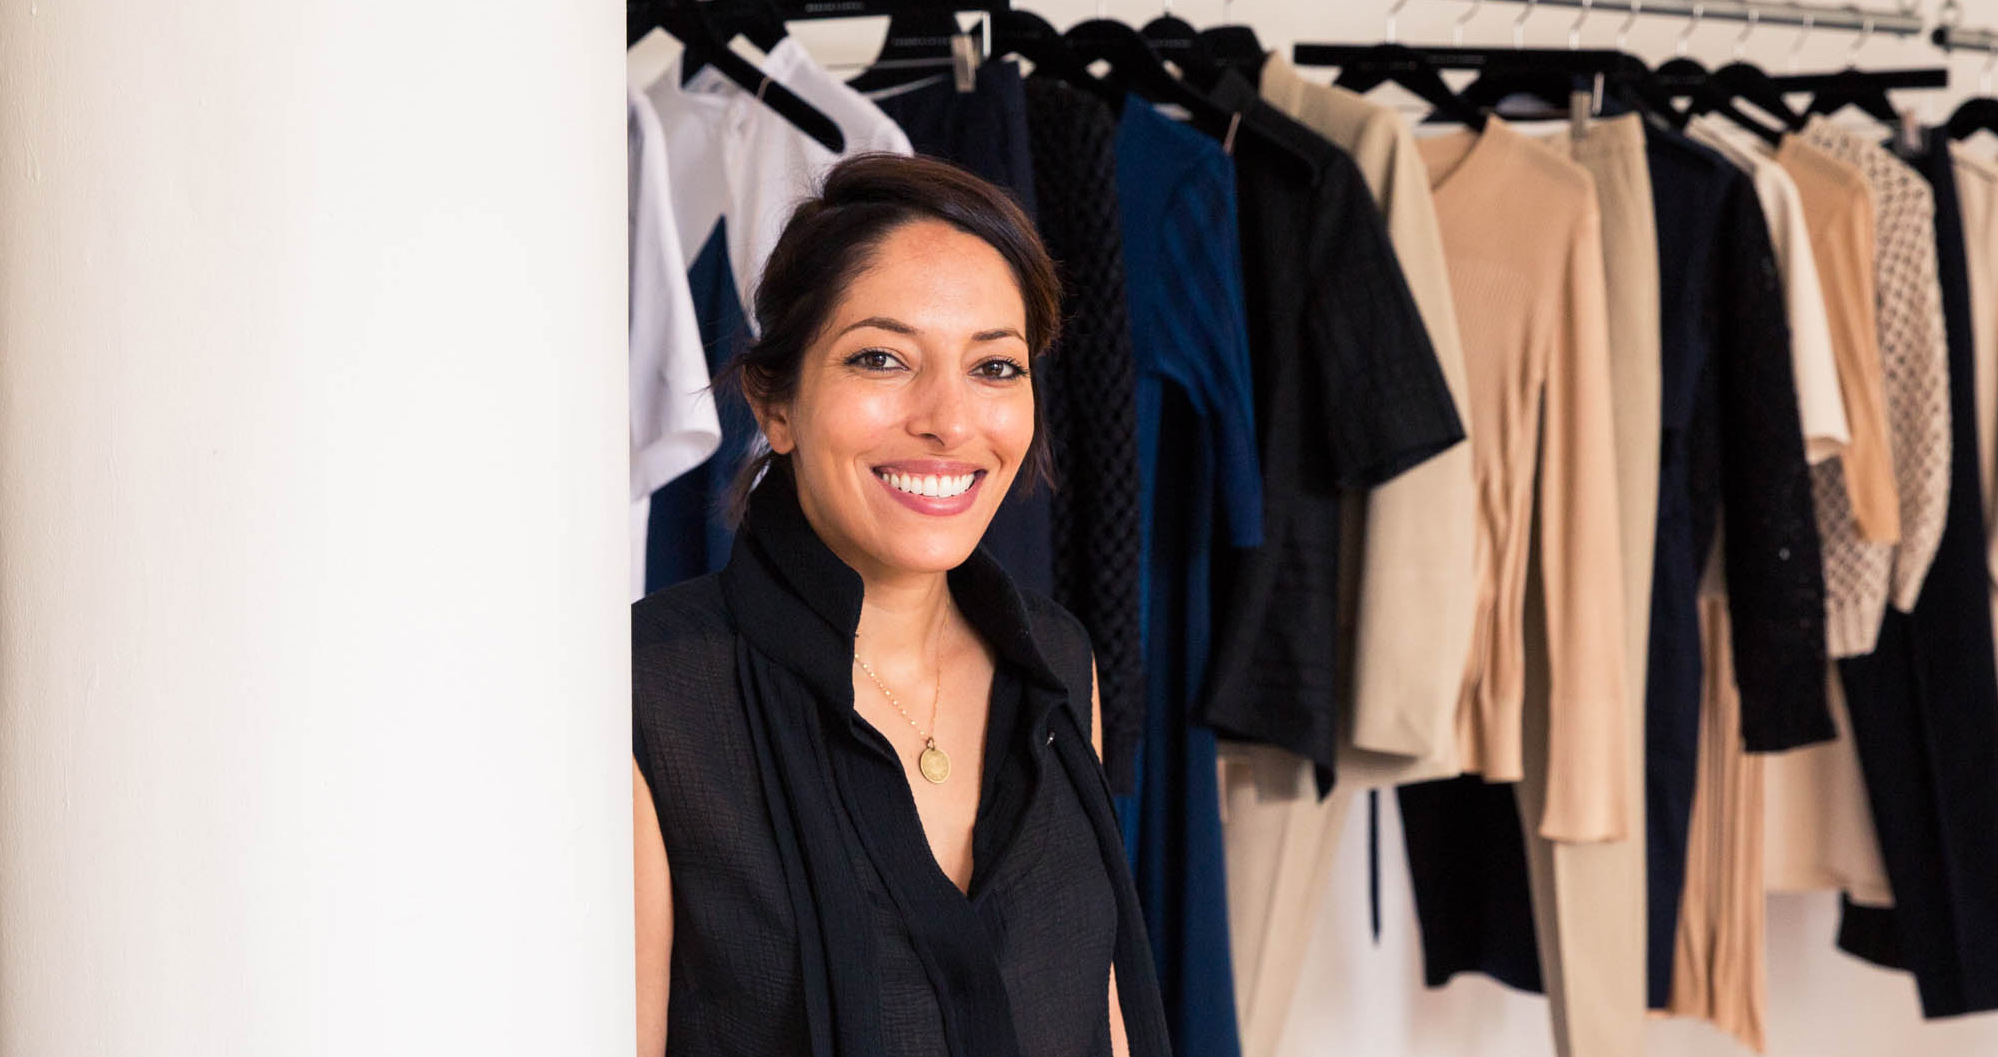 Your New Favorite Piece of Clothing Will Be By Nellie Partow